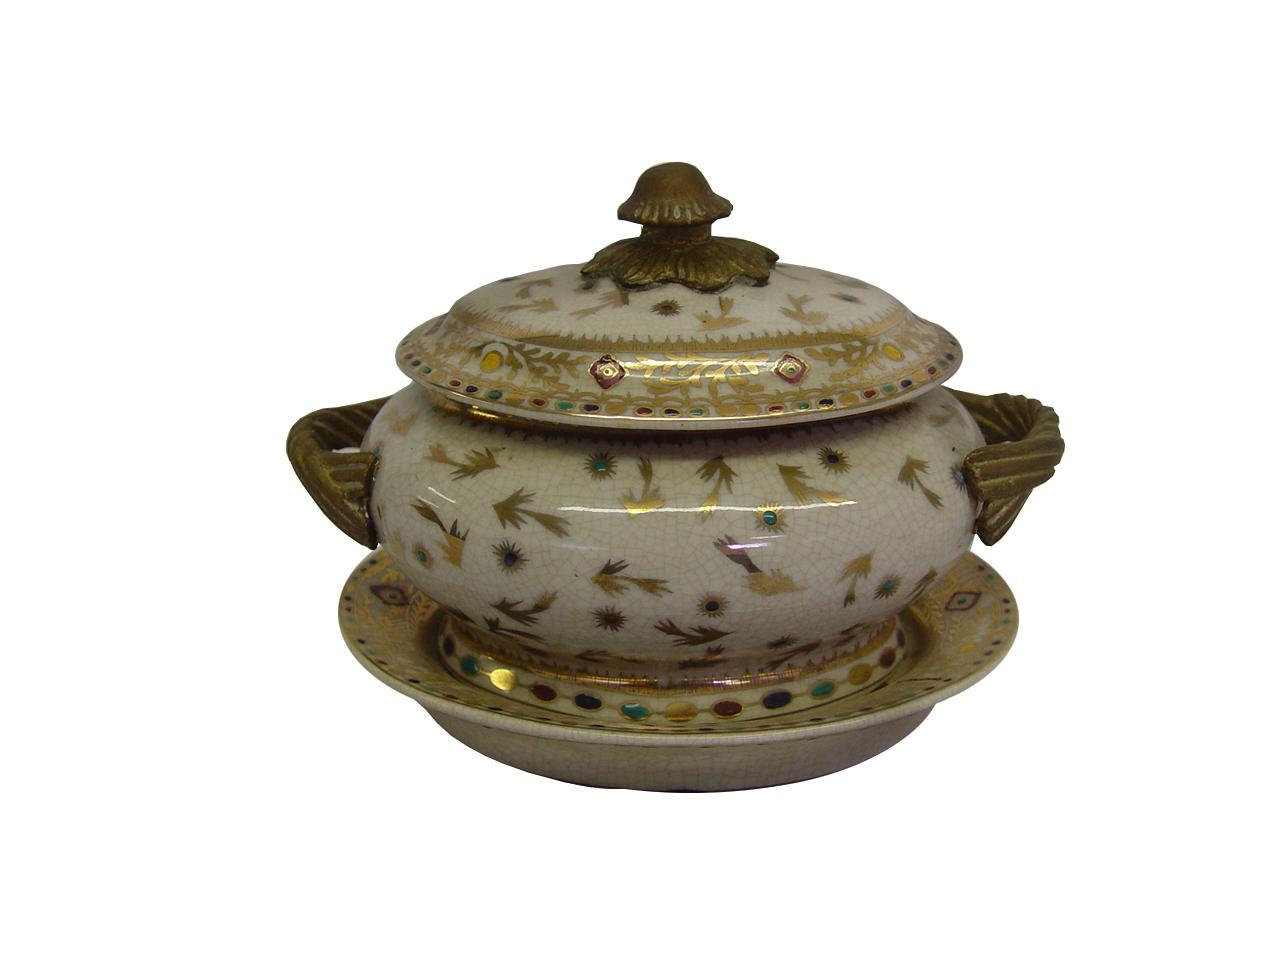 Golden Hays Porcelain Tureen